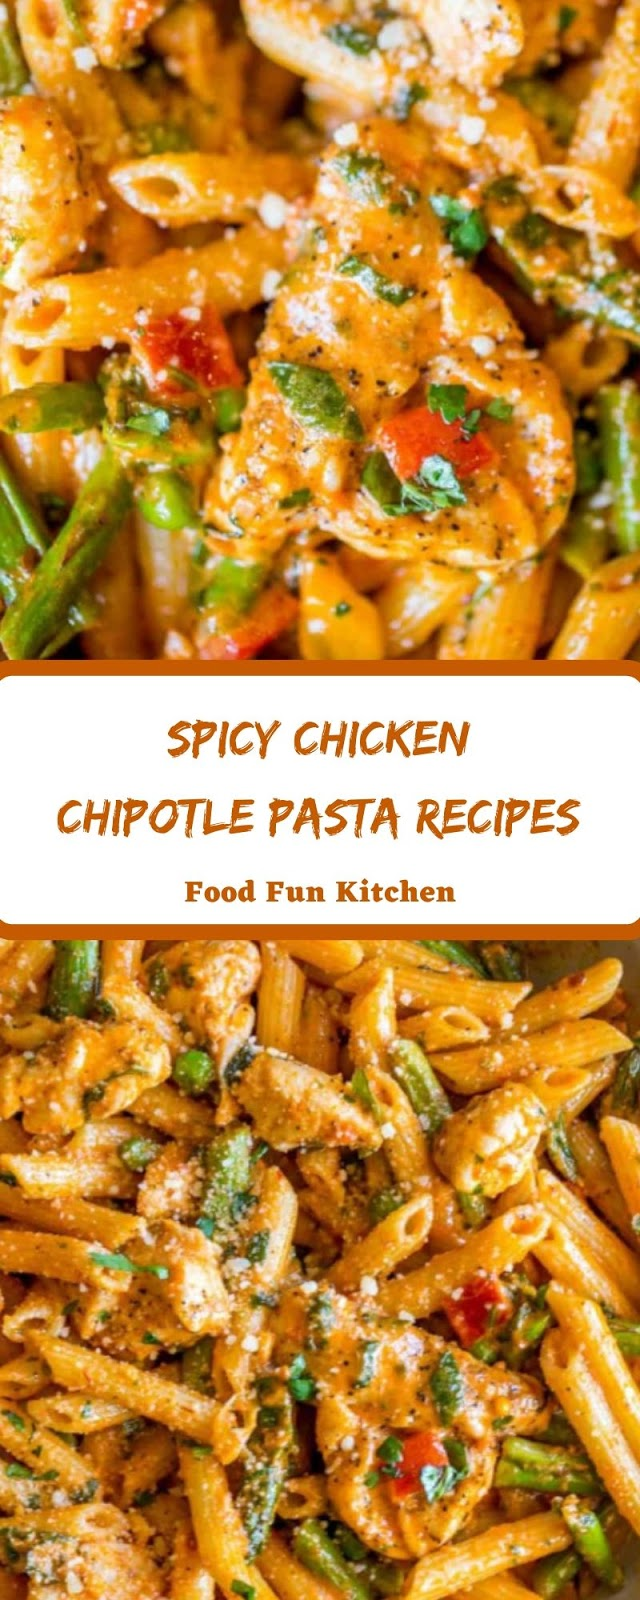 SPICY CHICKEN CHIPOTLE PASTA RECIPES